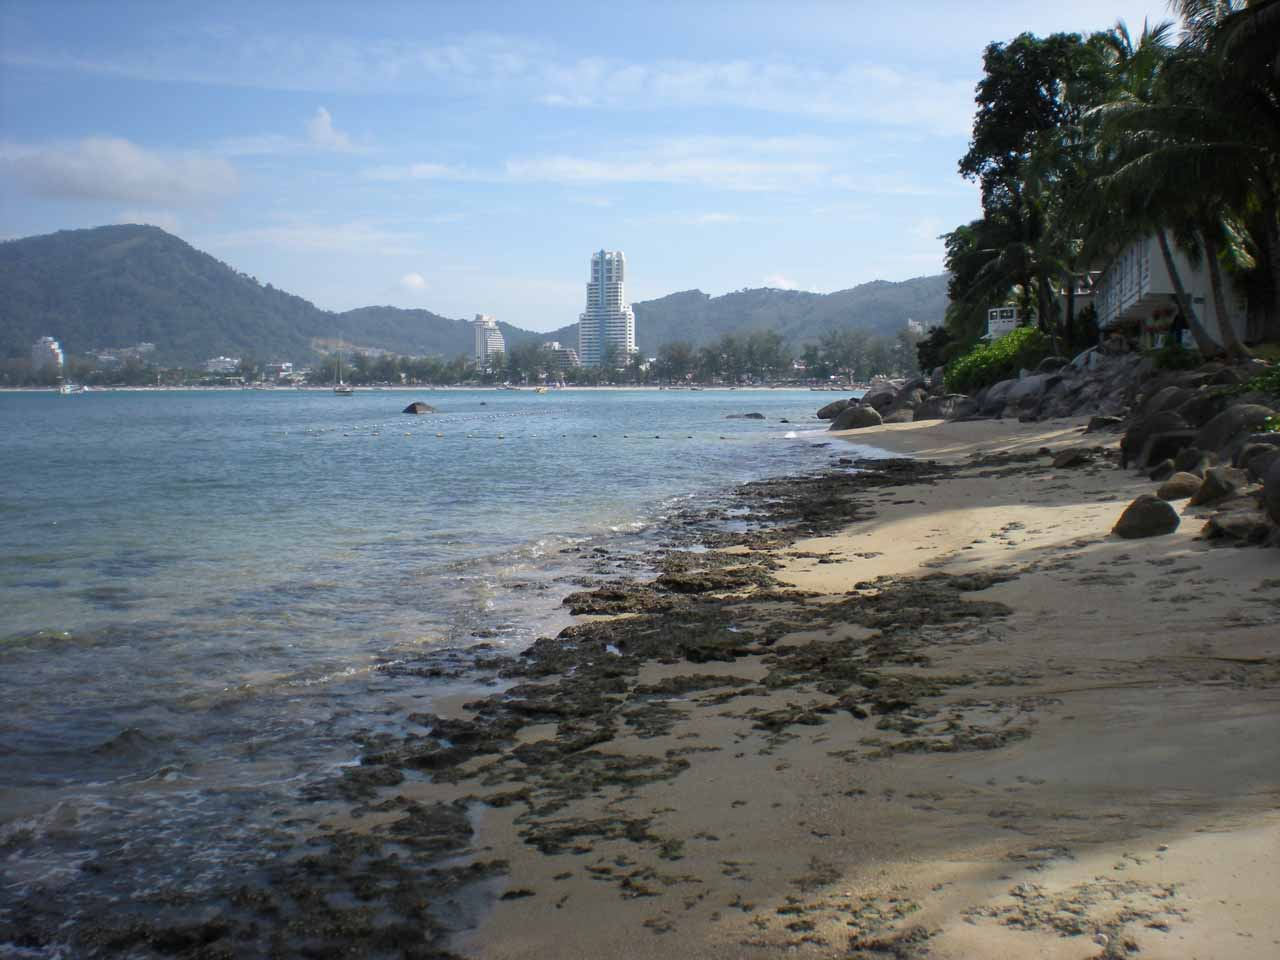 Looking back towards Patong Beach